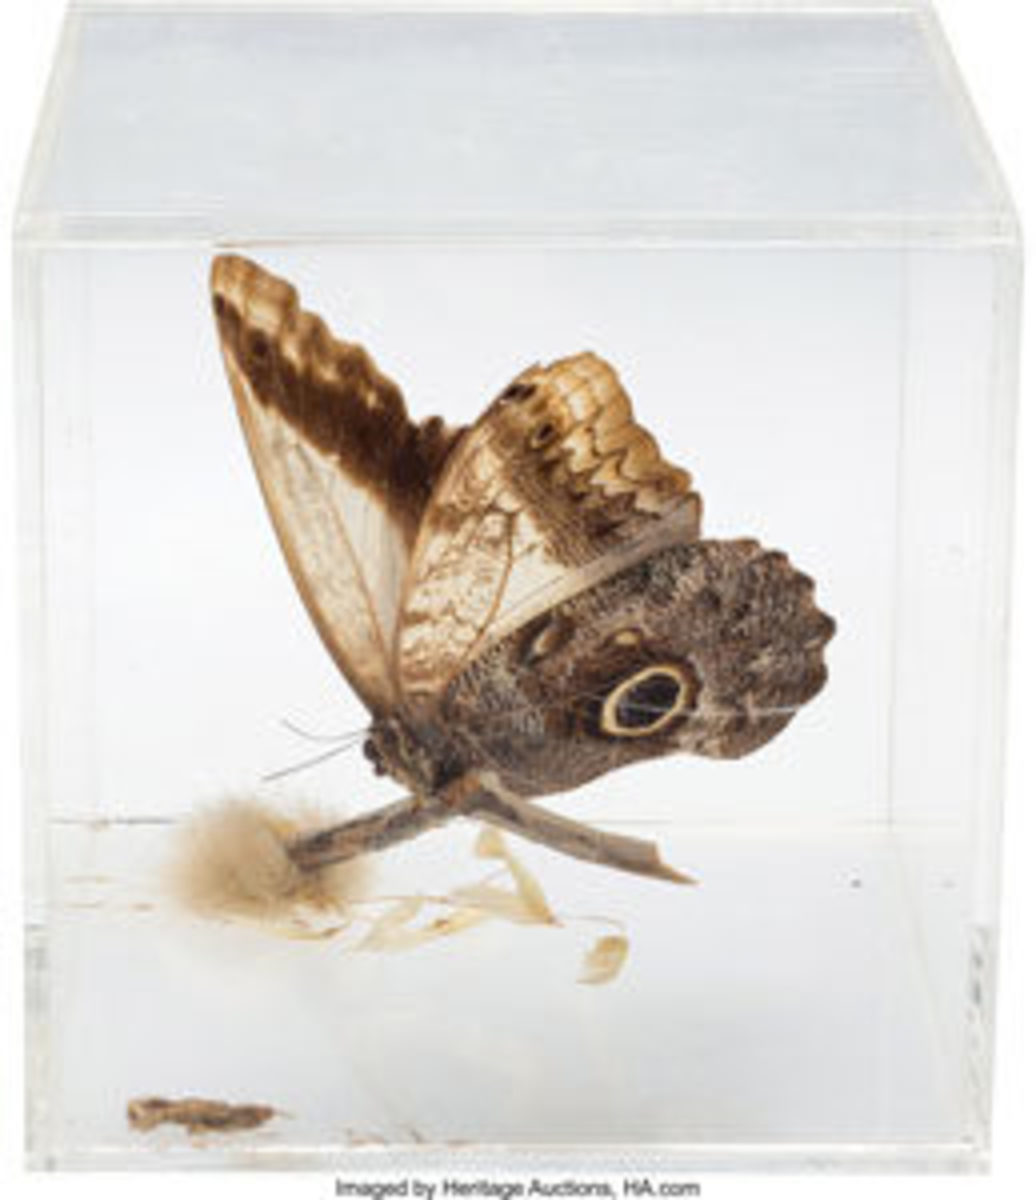 "This large preserved butterfly perched atop a twig in a 5"" x 5"" x 5"" clear acrylic case was previously owned by Elvis and displayed in Graceland's Pool Room. From the accompanying notarized letter of provenance from Memphis Mafia member Richard Davis: ""I was in Elvis' Pool Room at Graceland one day with several of the Memphis Mafia as I was delivering some records Elvis wanted. Everyone was playing pool with Elvis. I had drunk a few cocktails and kept picking up one of the butterfly cubes with a large brown butterfly inside. Elvis said, 'Man, you sure are staring at that thing, you better take it home,' which I did. It has been with me ever since."" This sold at auction for $1,000. Image courtesy of Heritage Auctions"